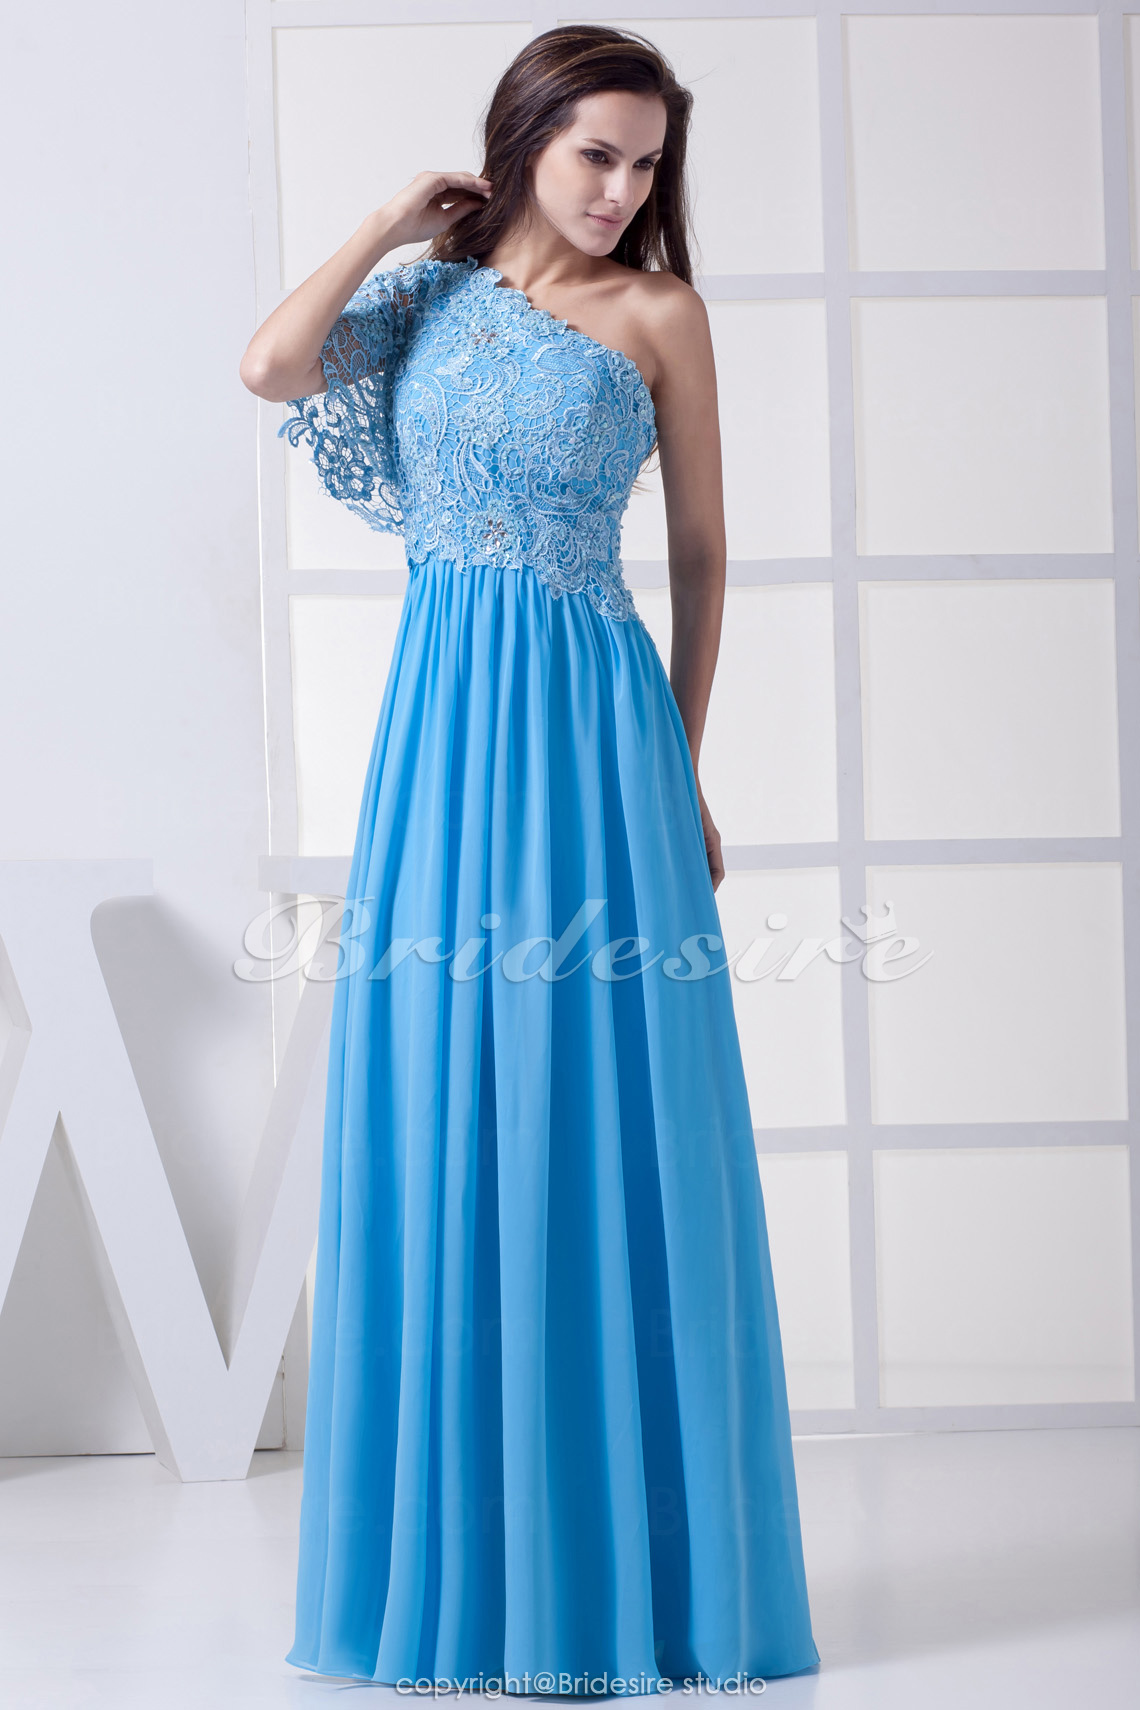 Sheath/Column One Shoulder Floor-length Short Sleeve Chiffon Lace Dress